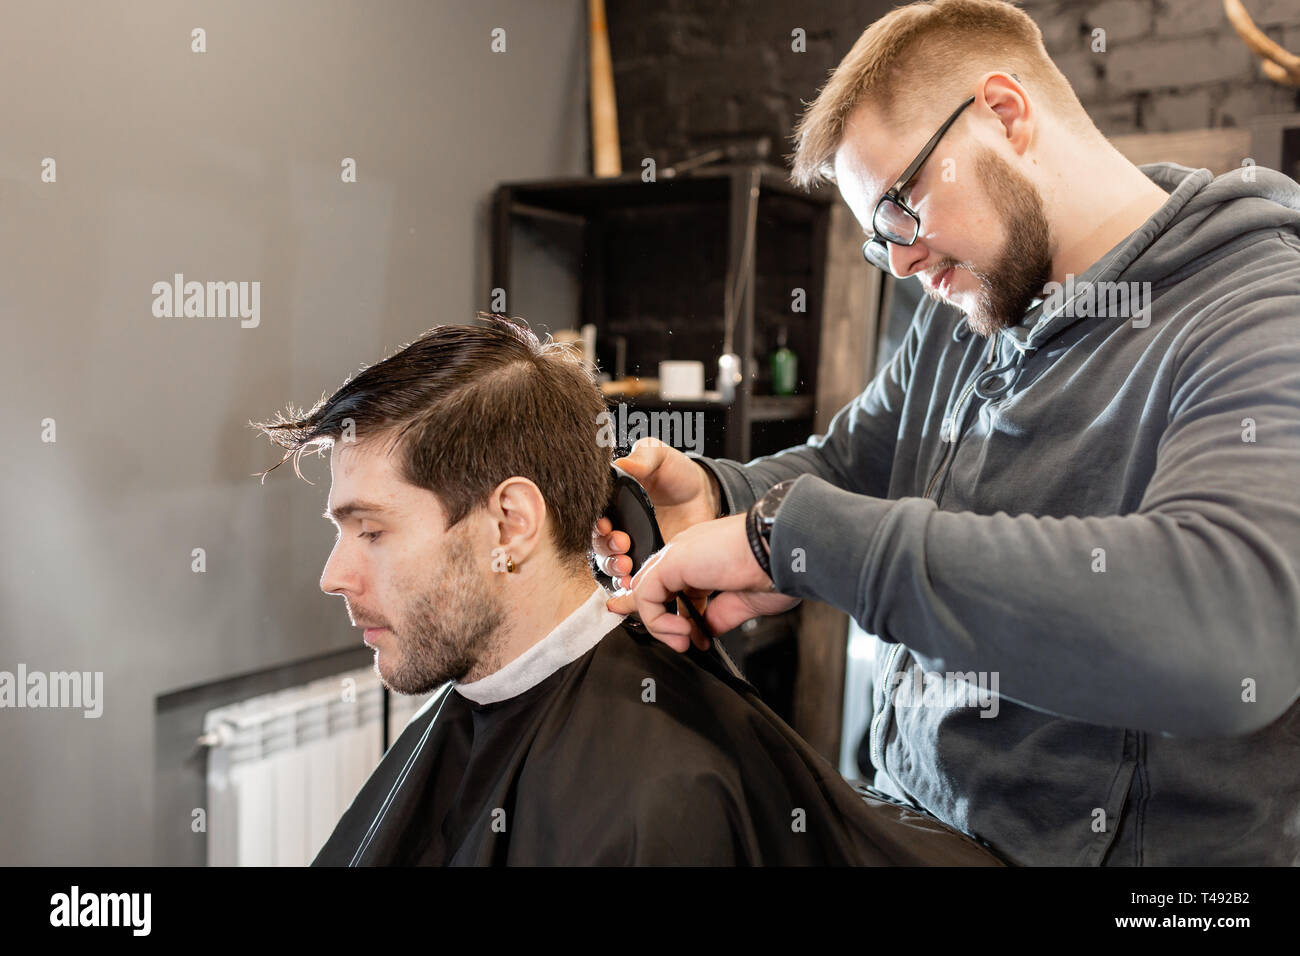 Barber work with clipper machine in barbershop. Professional trimmer tool cuts beard and hair on young guy in barber shop salon. Stock Photo